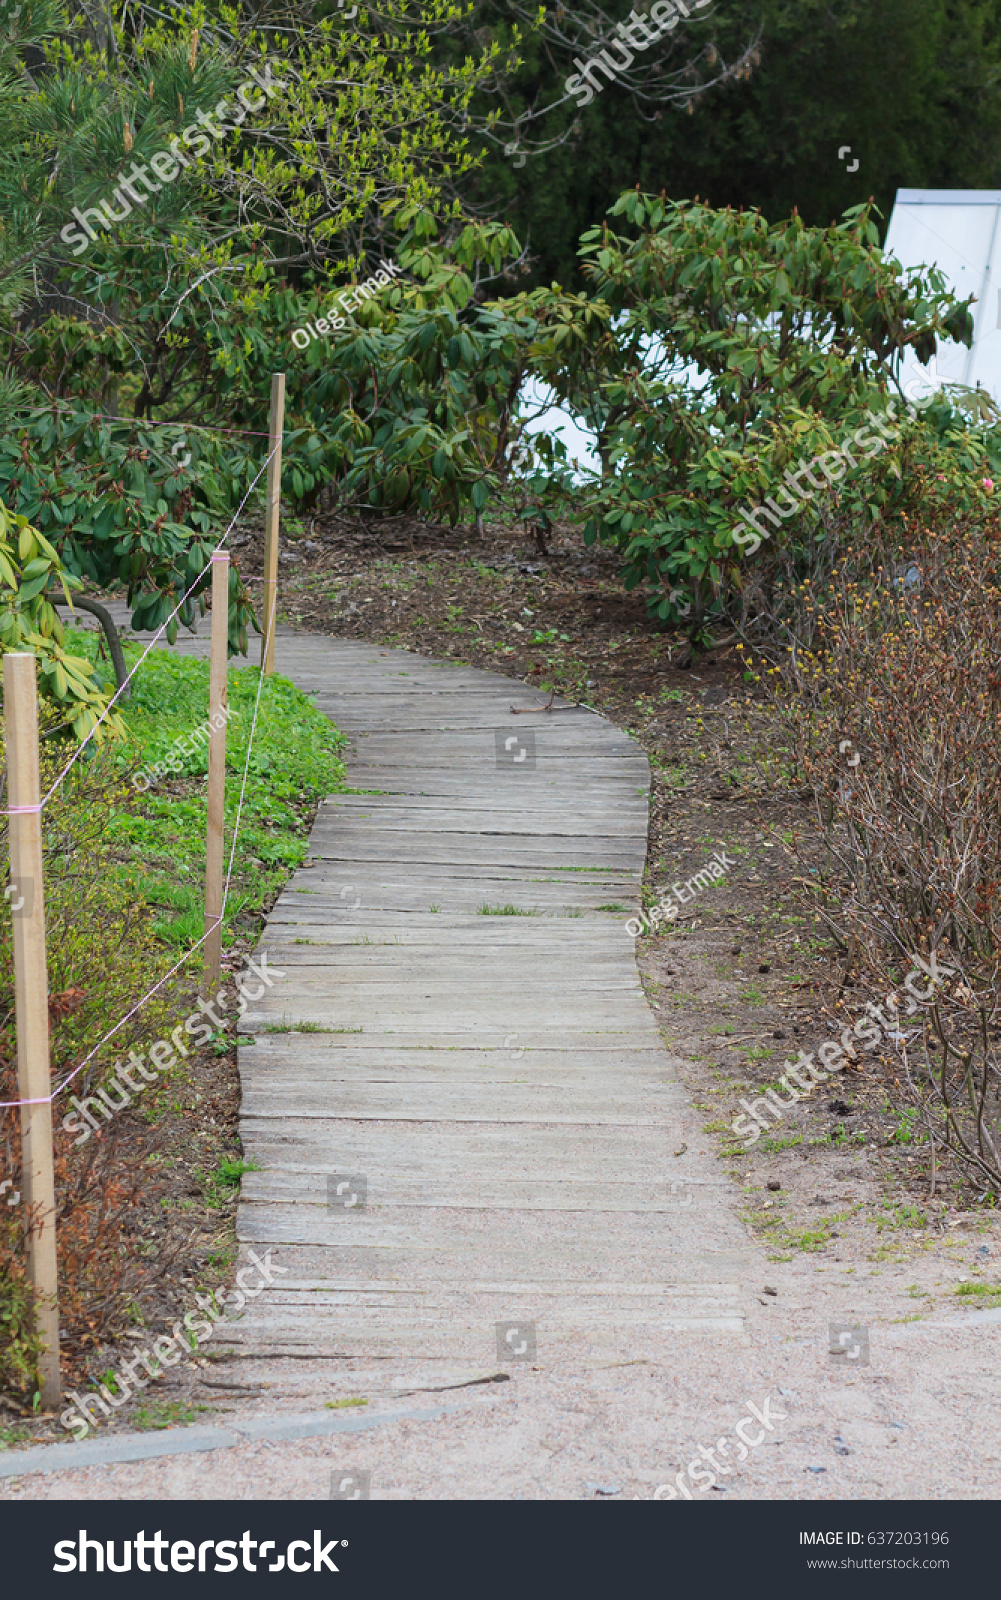 Free Images : tree, nature, path, pathway, grass, outdoor, sky ...